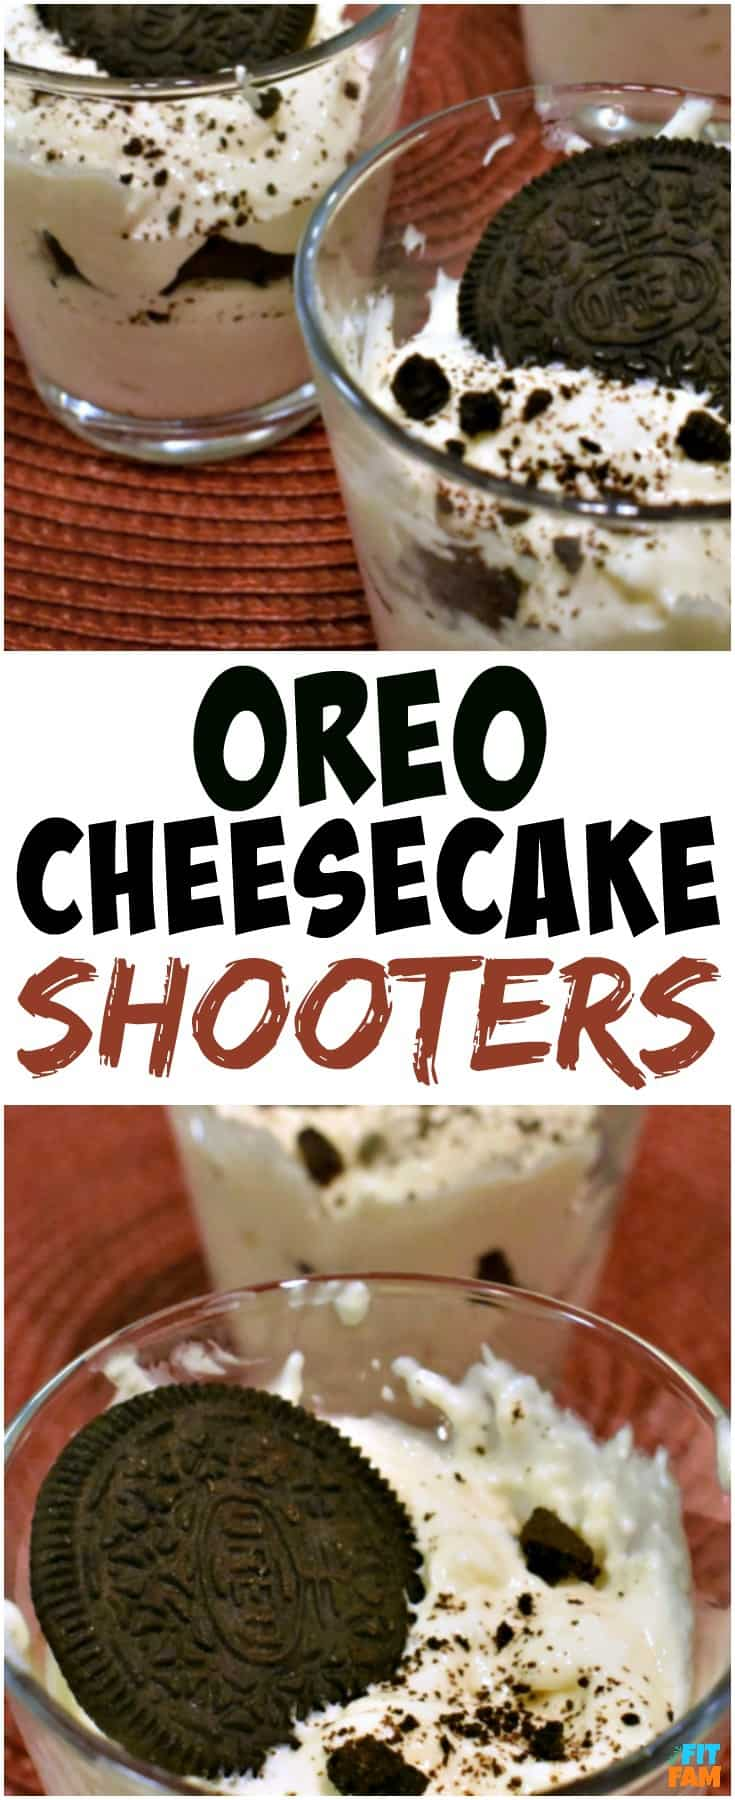 these low carb oreo cheesecake shooters are perfect for a holiday party or just a night when you want to indulge without ruining your diet. They are IIFYM friendly and high protein! Such a great dessert!